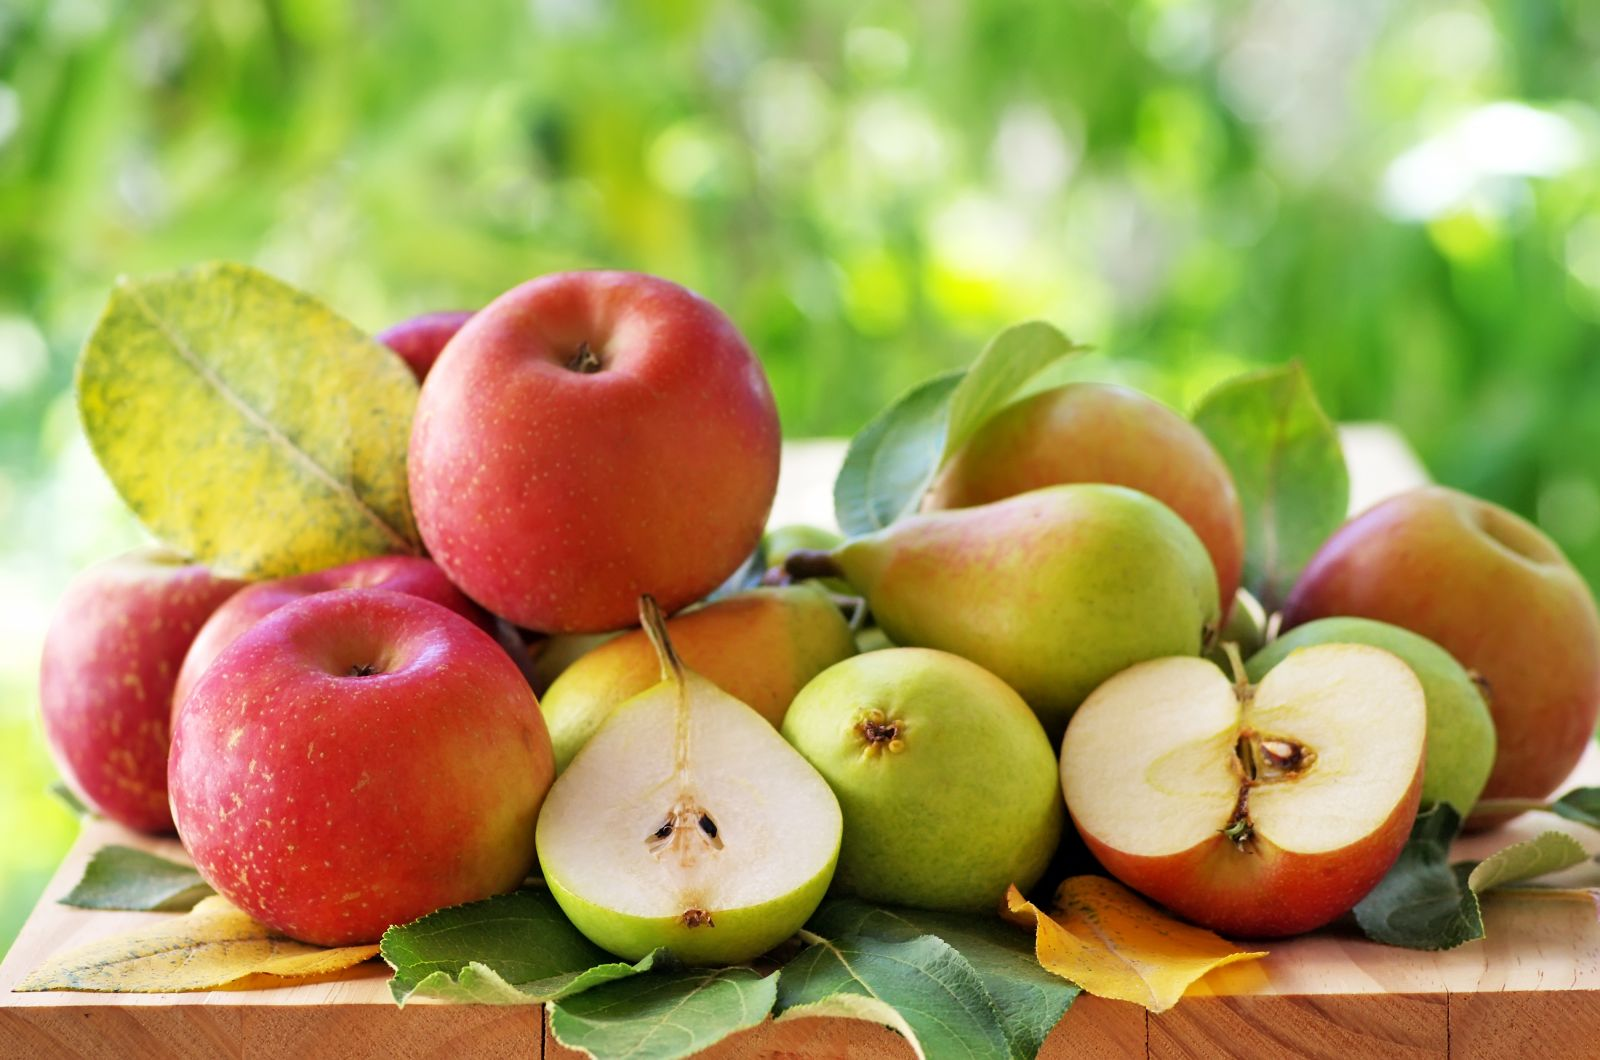 Eating apples and pear may help low blood pressure